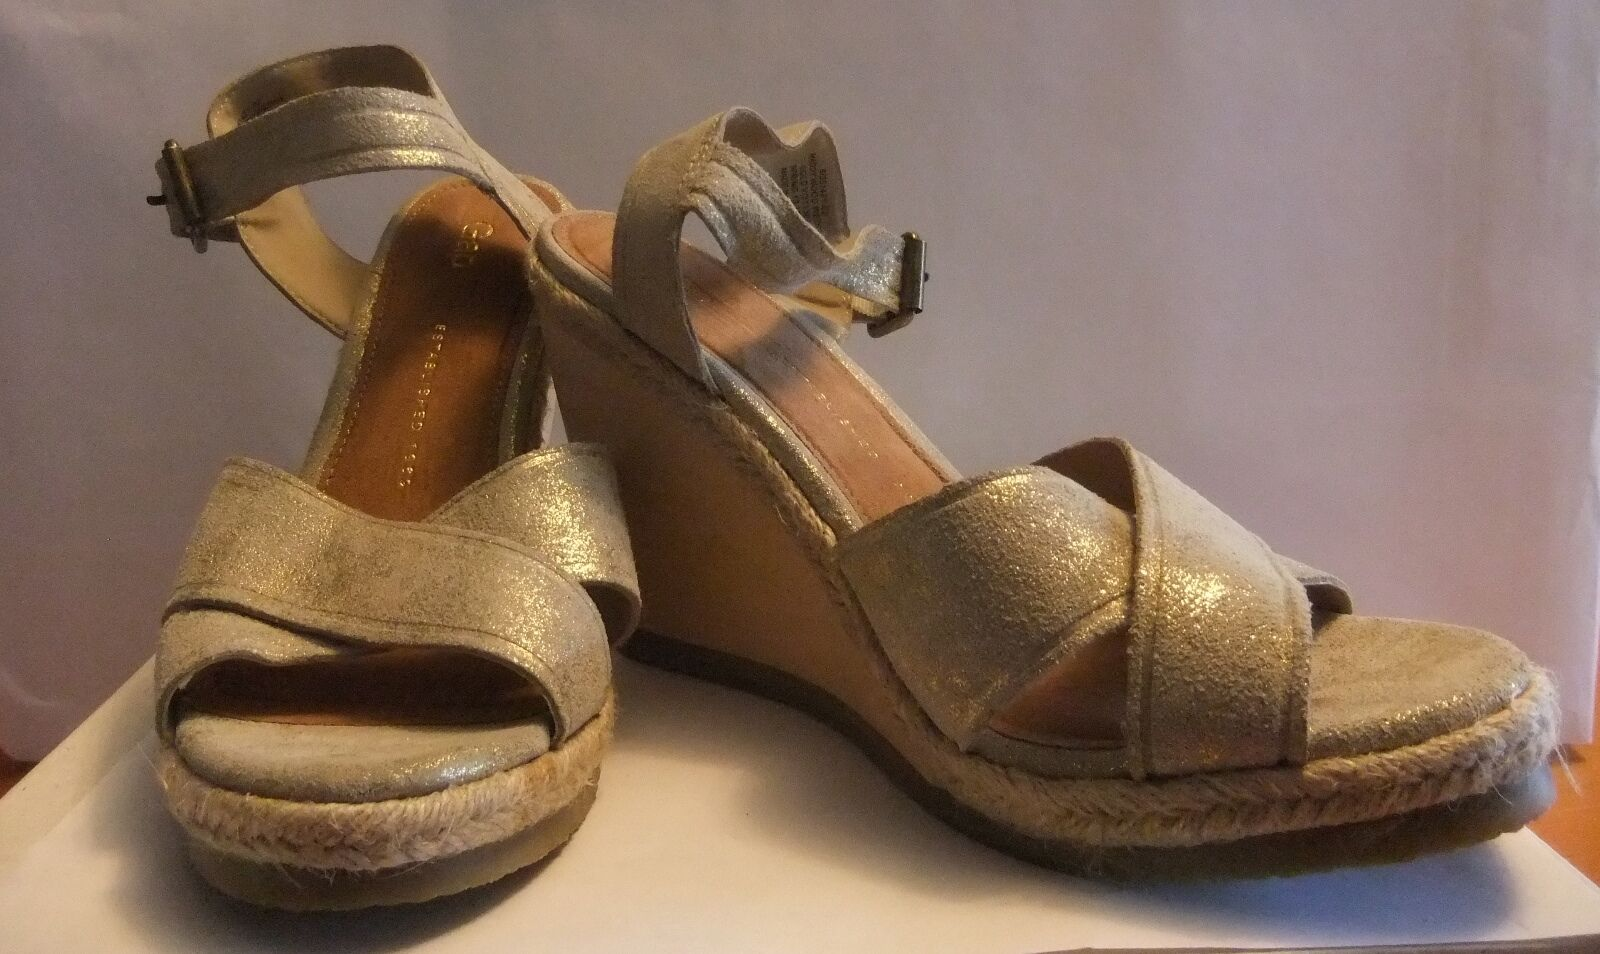 Brand New & Unused GAP Maddy Wood Wedge Sandals in Gold Size 9